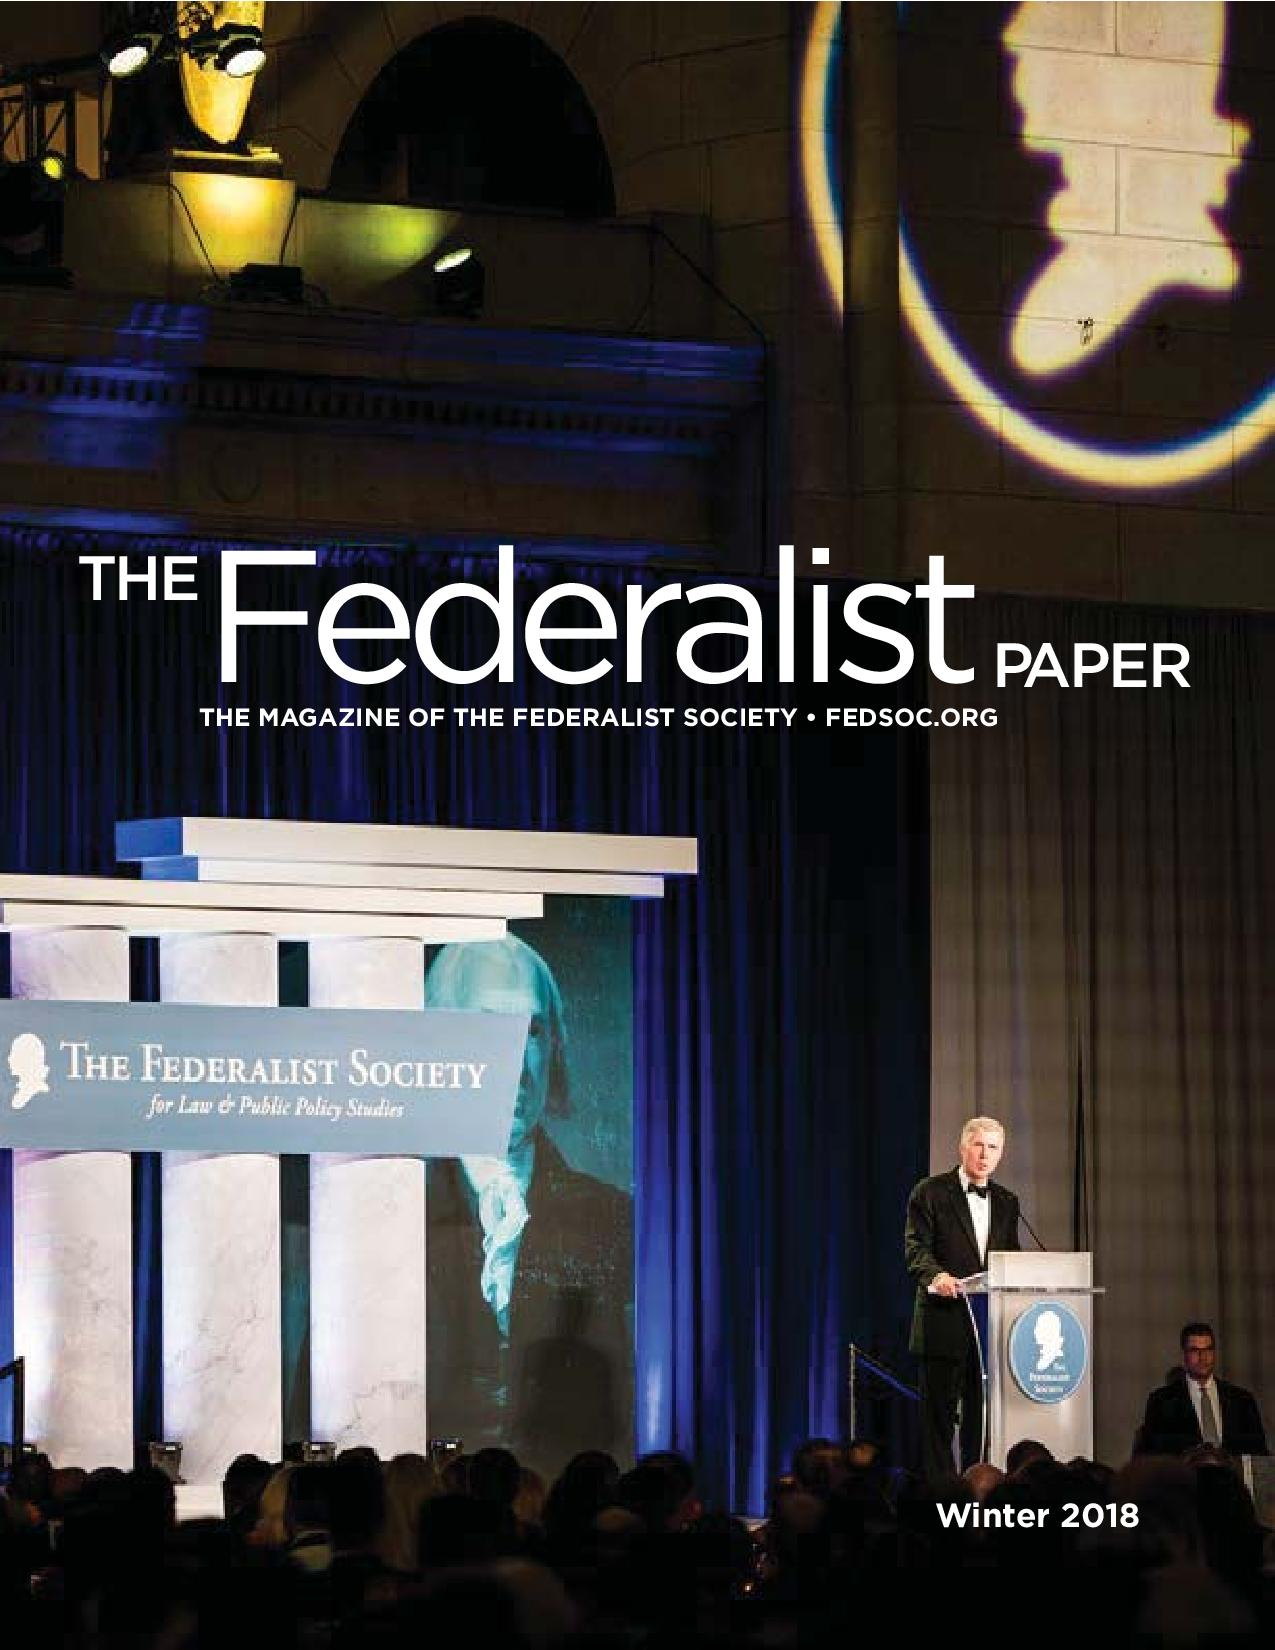 The Federalist Paper, Winter 2018